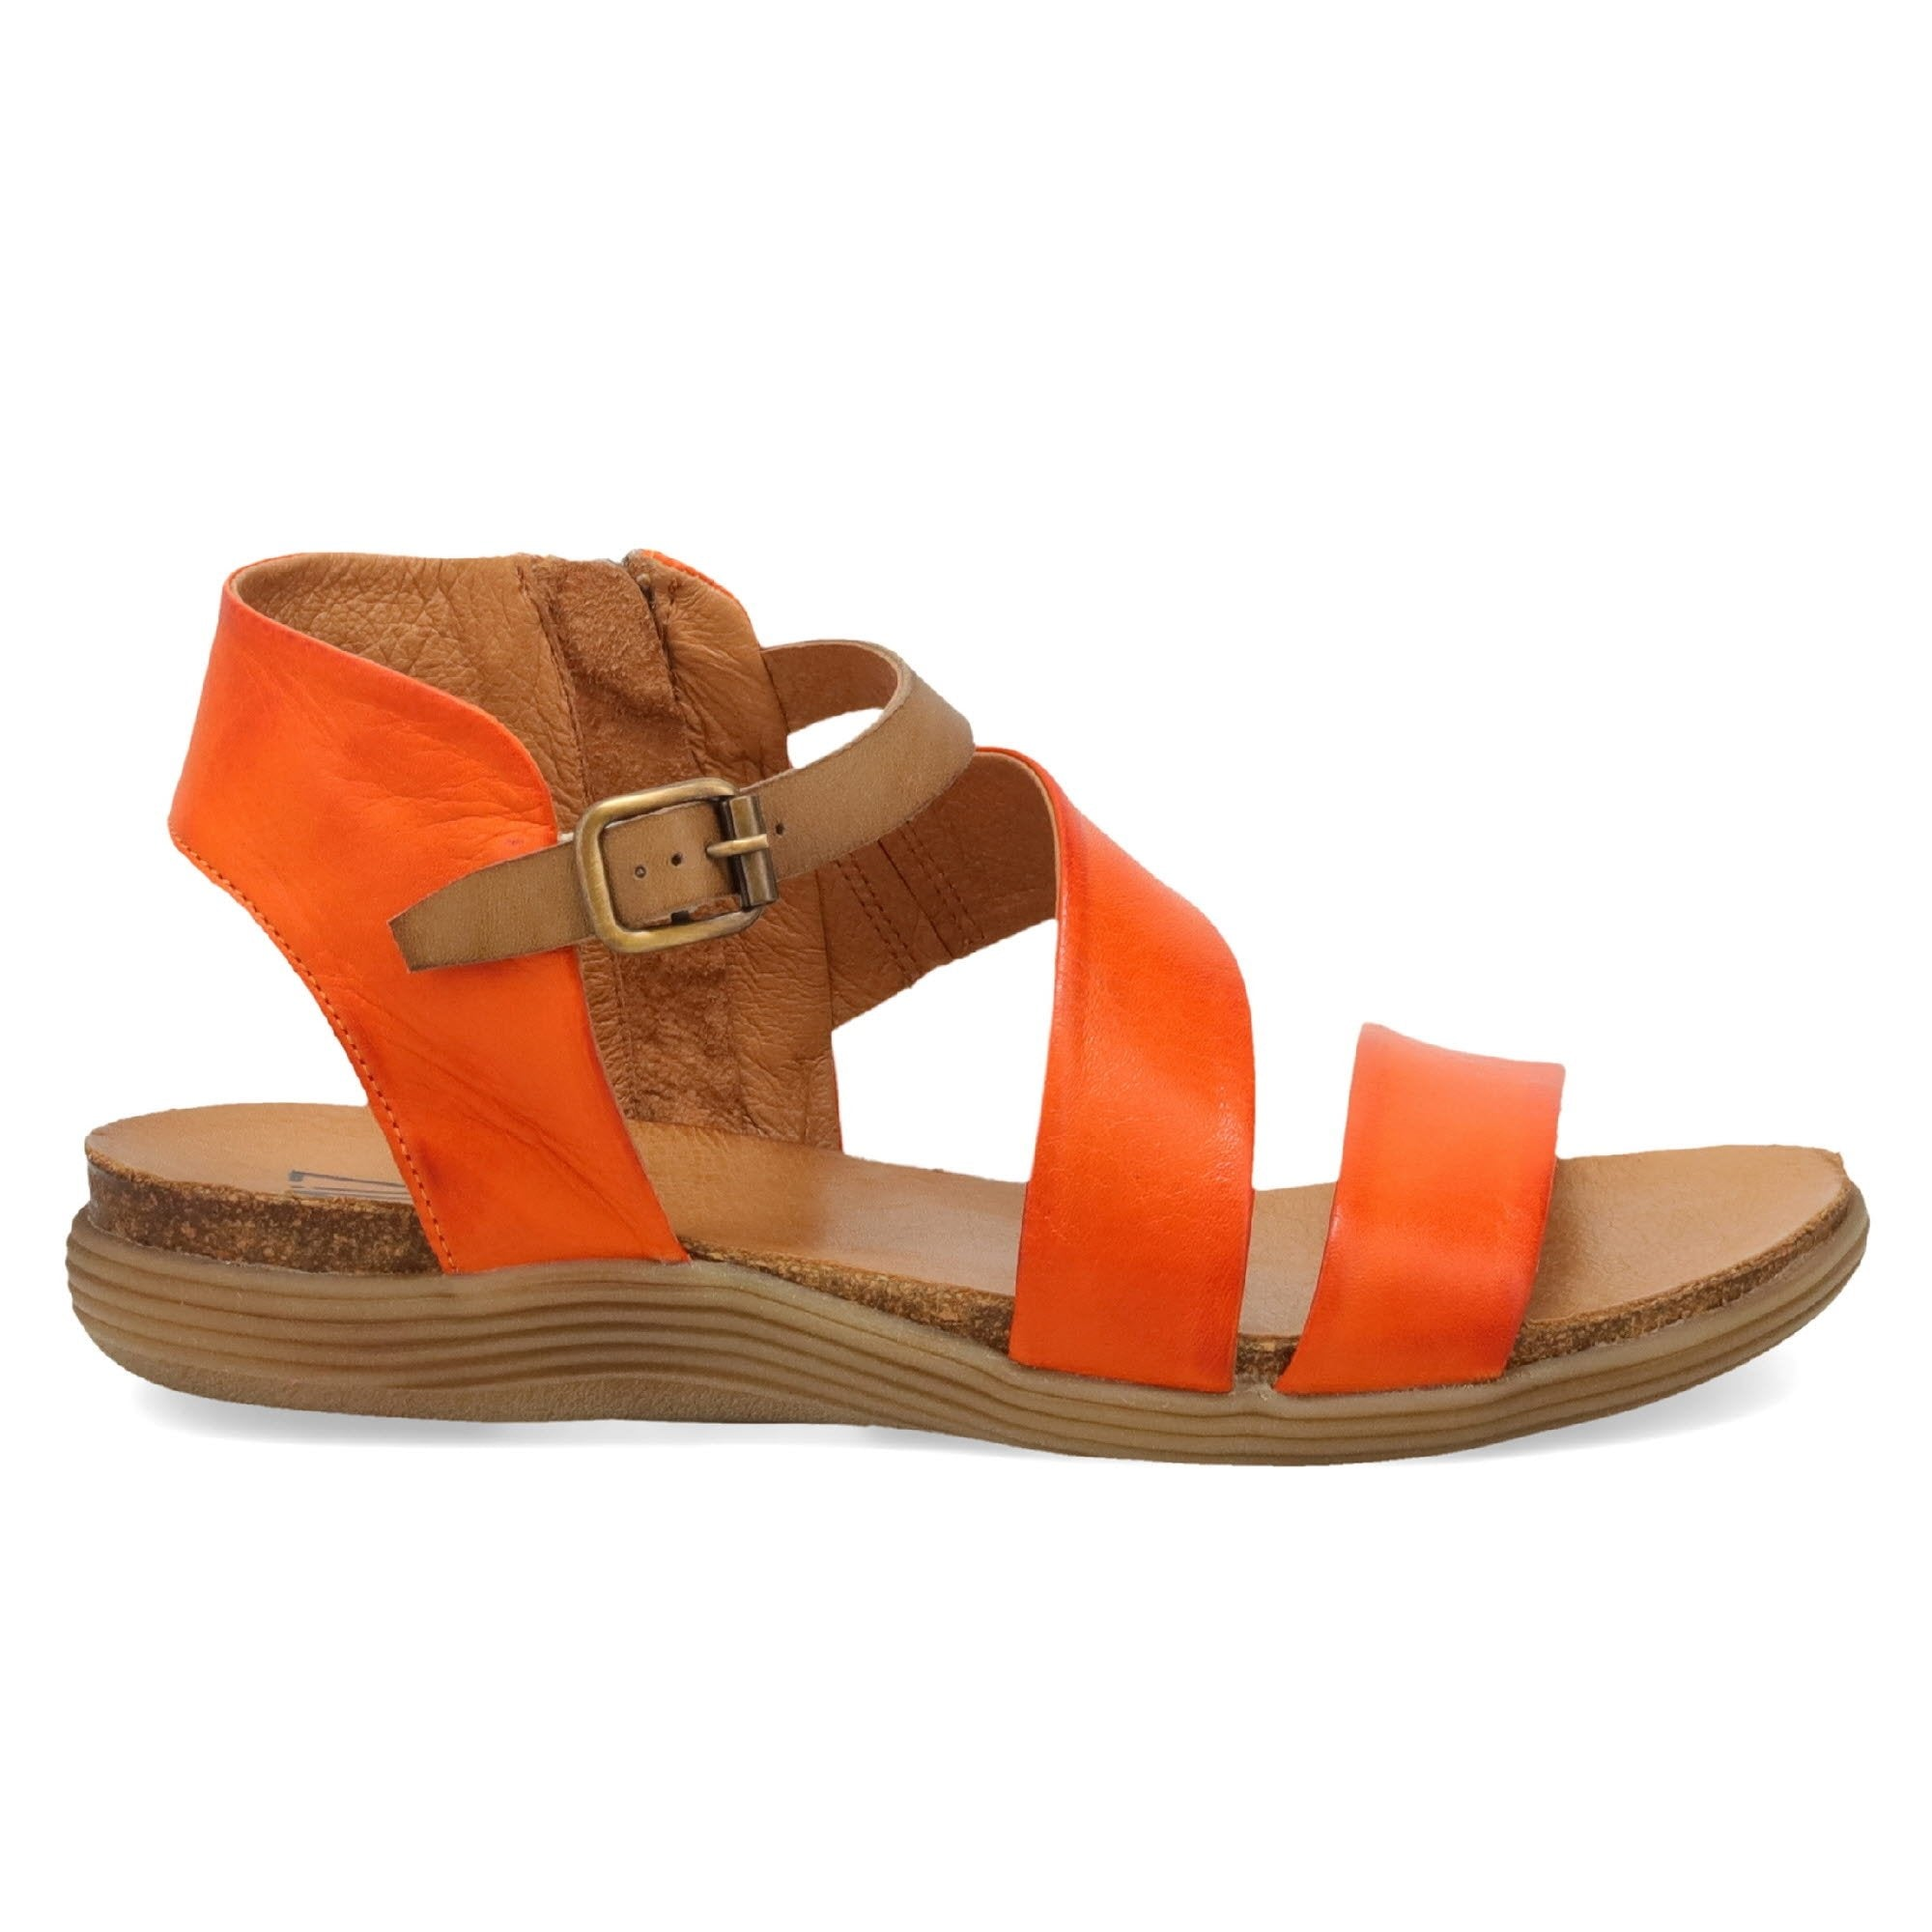 MIZ MOOZ - MEADOW IN ORANGE